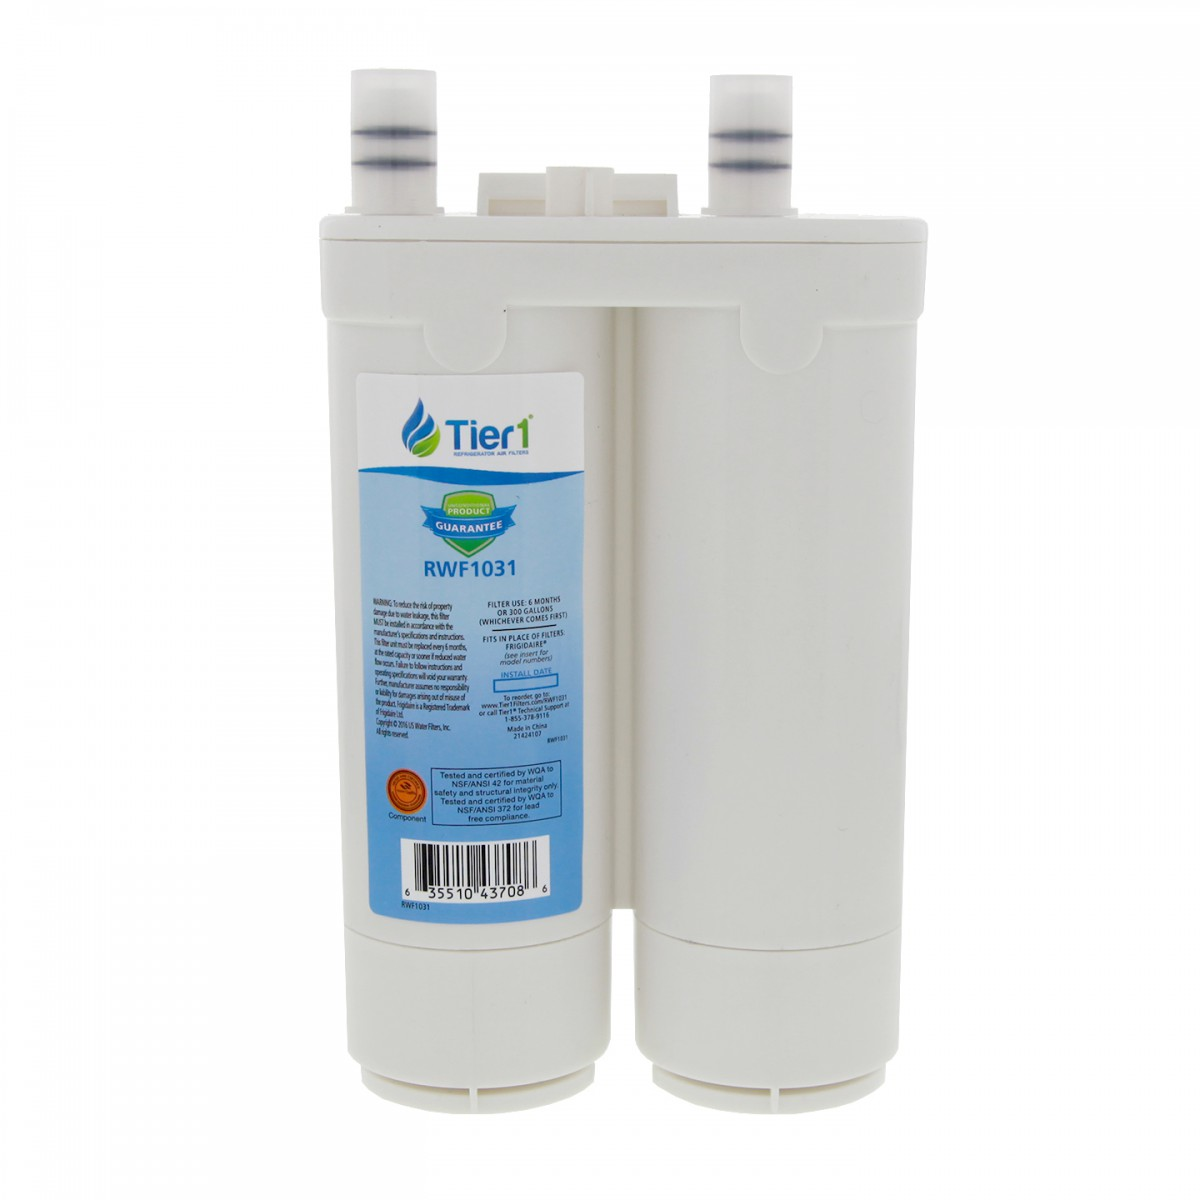 whirlpool refrigerator water filter replacement instructions